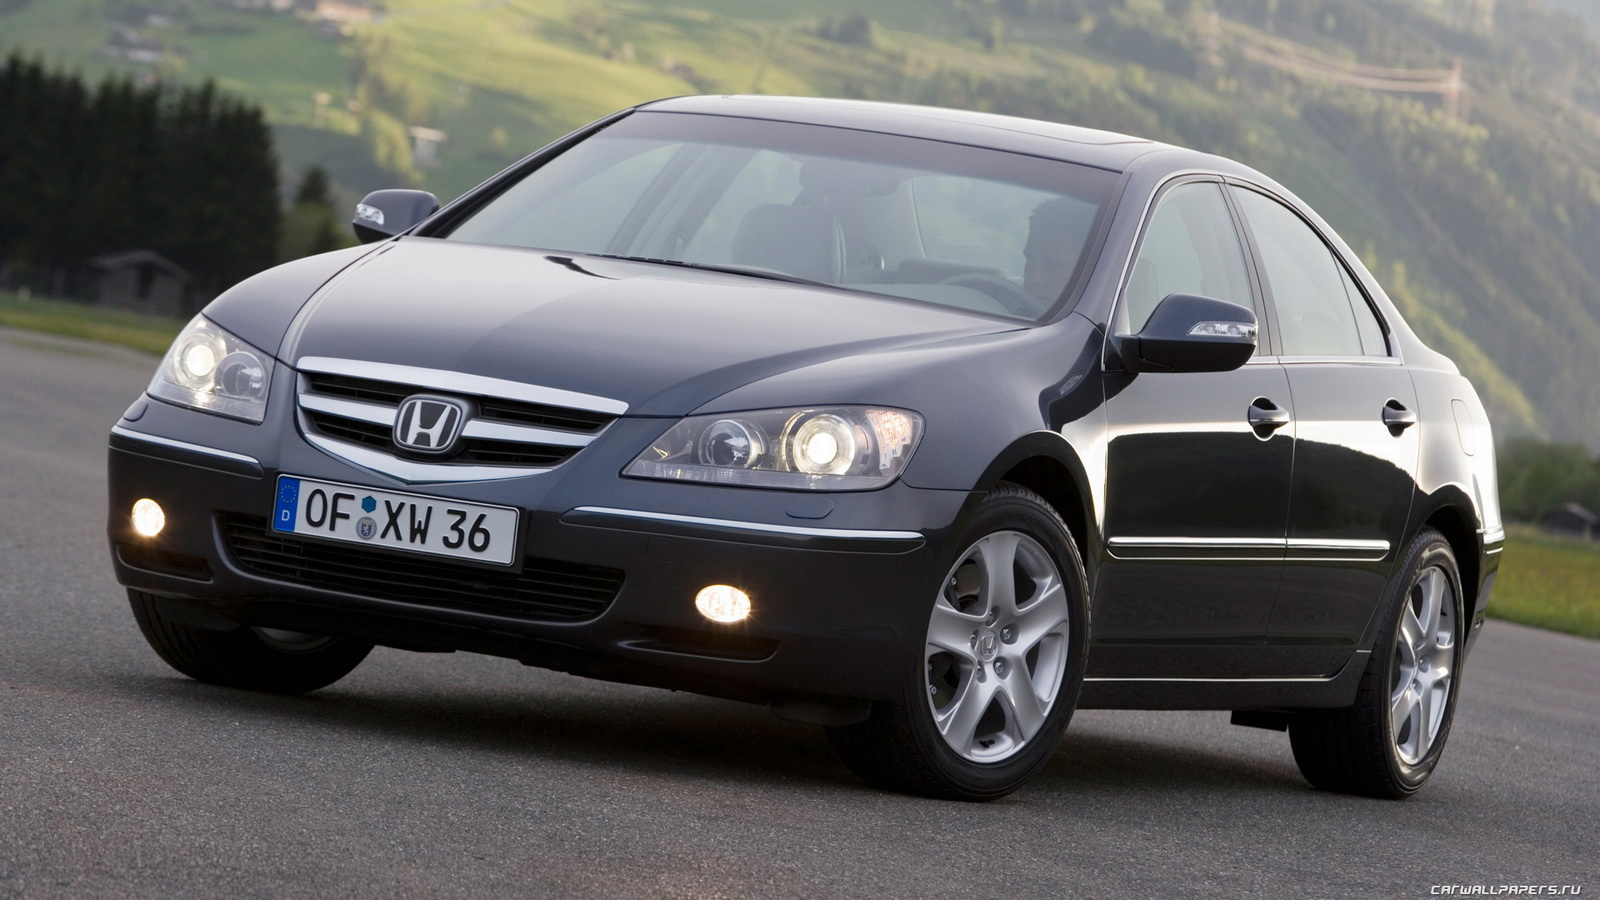 2006 Honda Legend #6